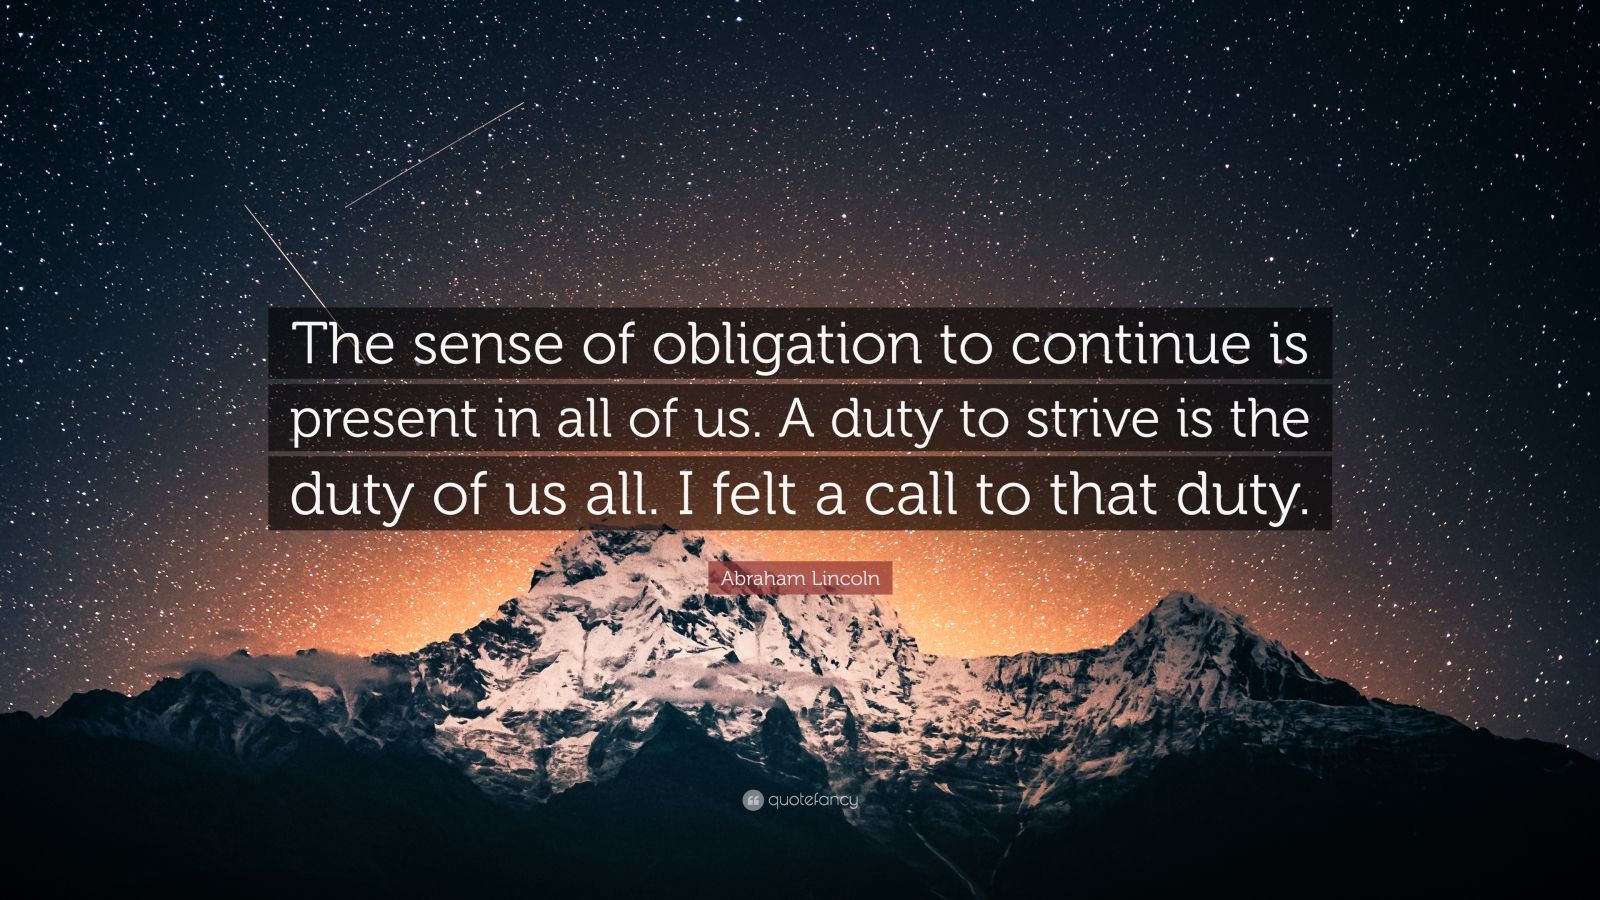 """Abraham Lincoln Quote: """"The sense of obligation to continue is present in all of us. A duty to strive is the duty of us all. I felt a call to that duty."""""""